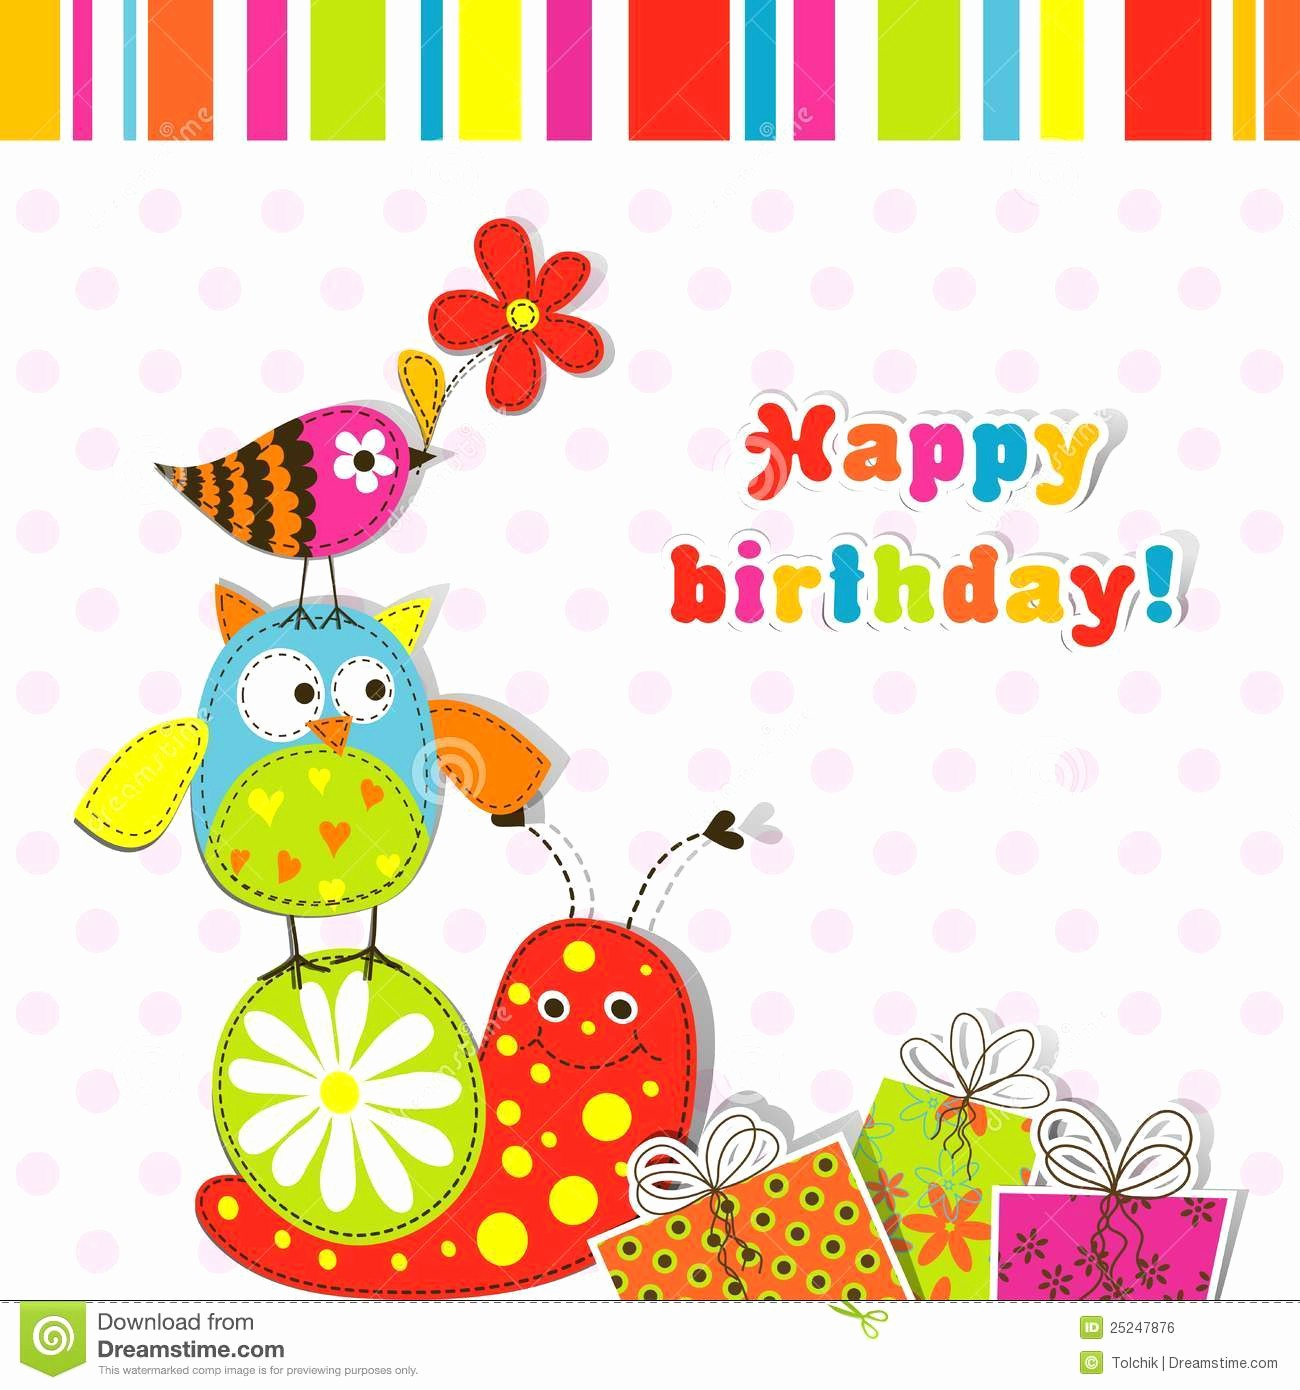 Templates for Cards Free Downloads Unique Birthday Card Template